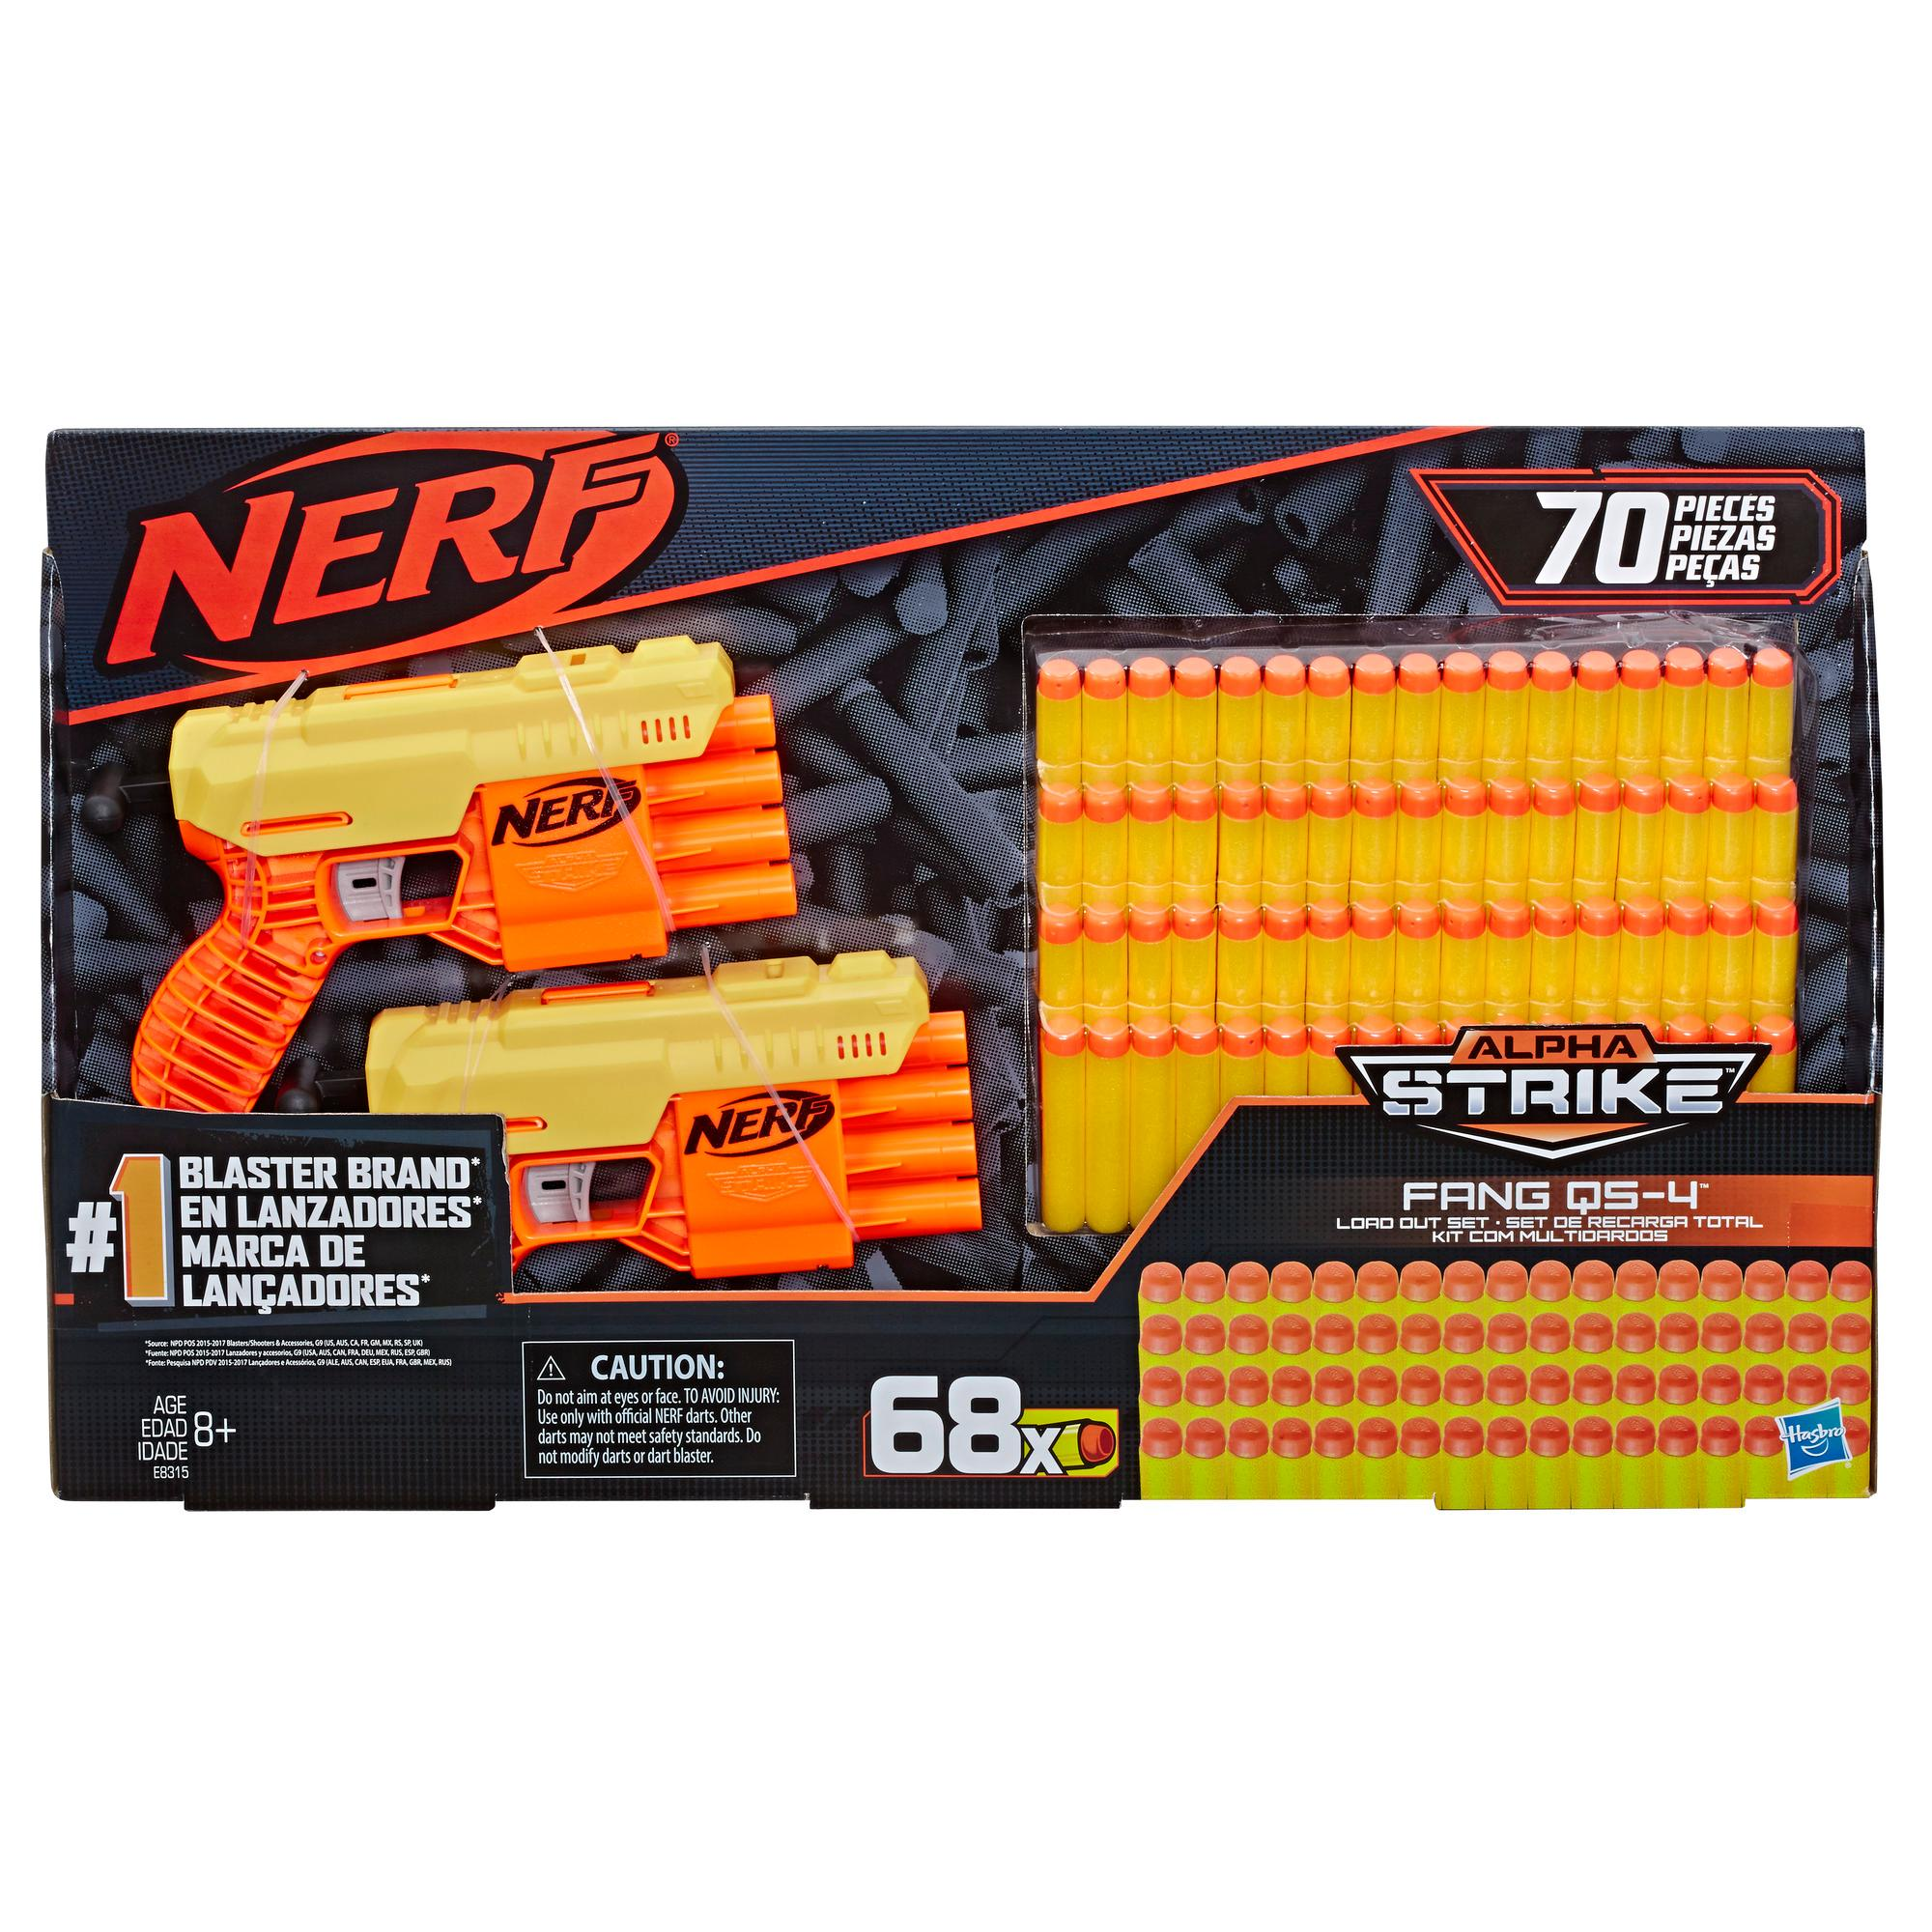 Nerf Alpha Strike Kit de equipamentos Fang QS-4 - Kit